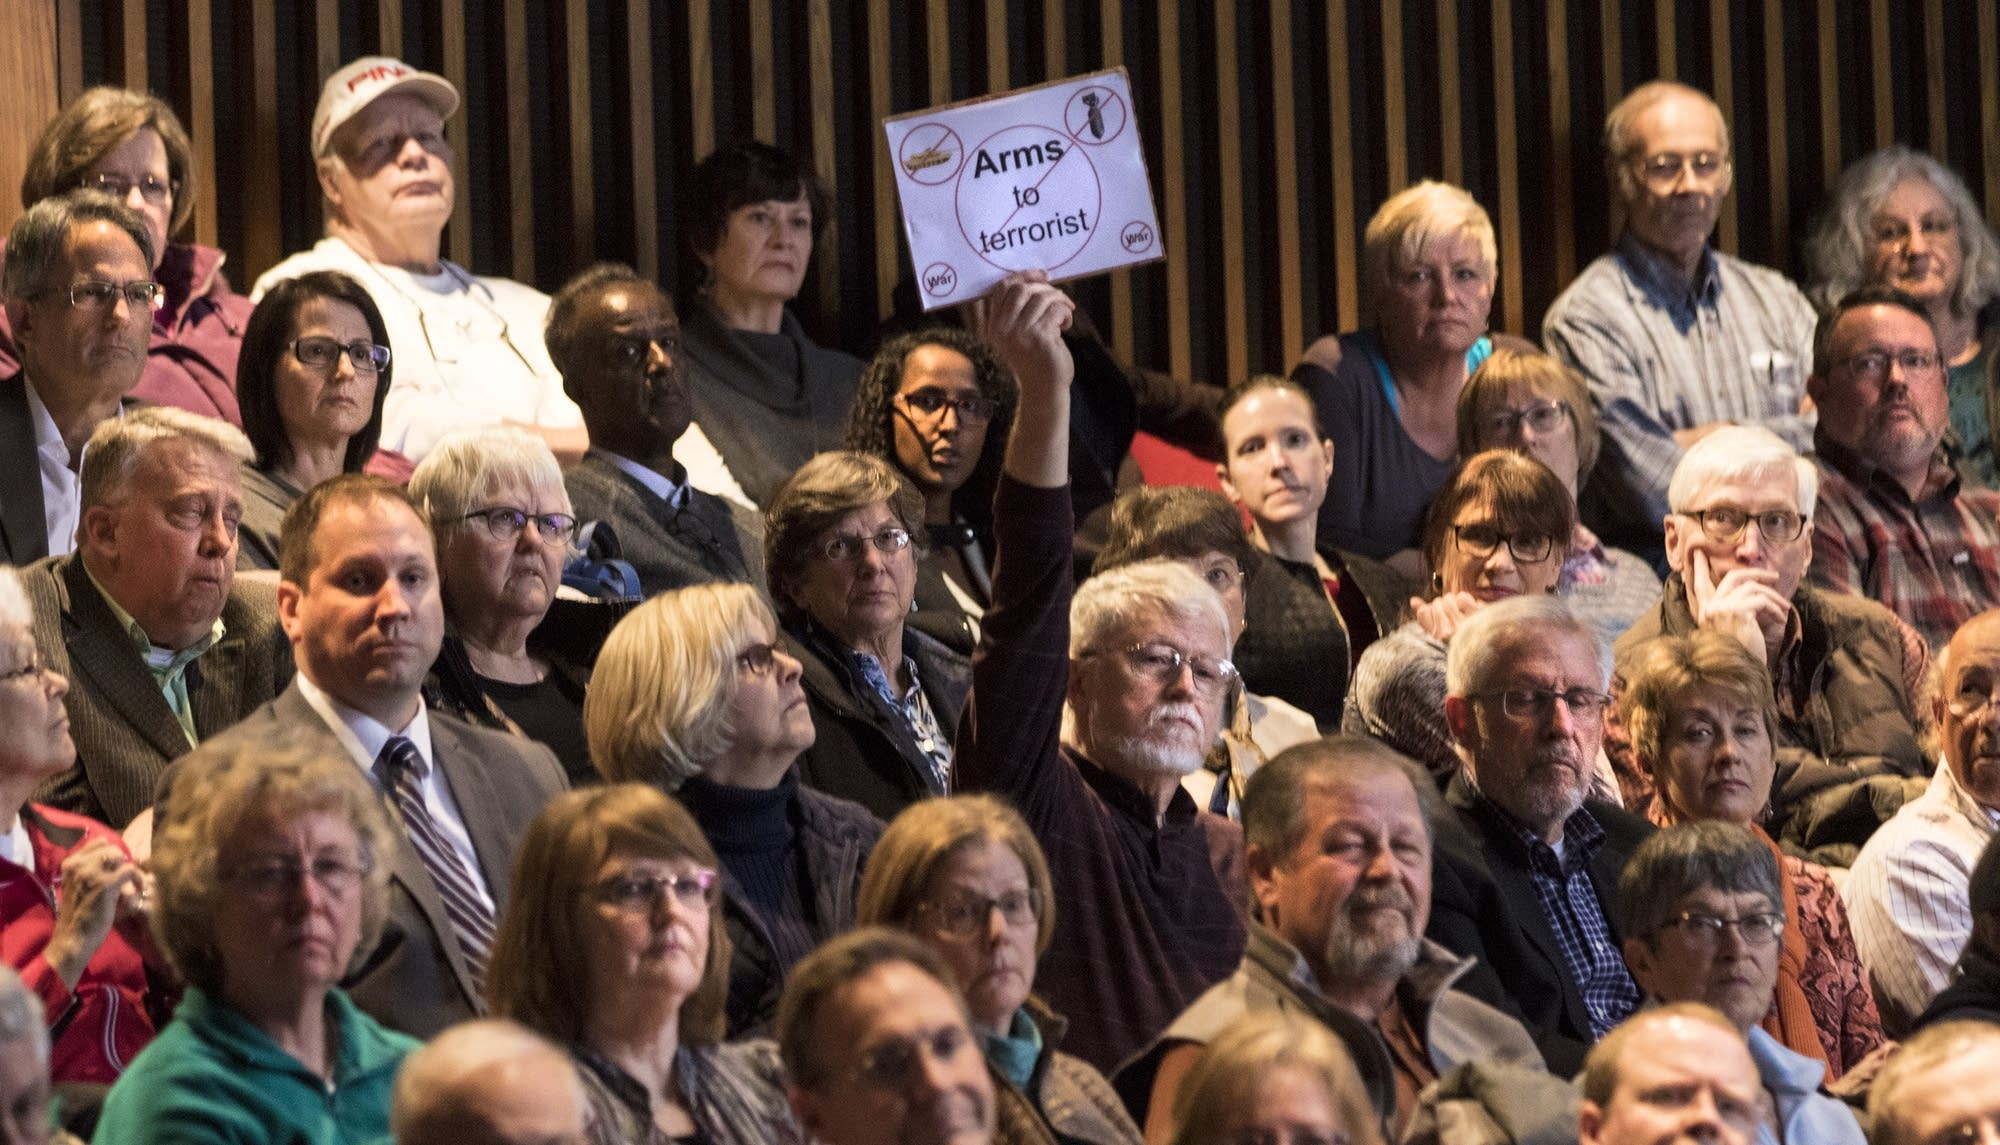 Constituents came prepared with questions and responses for Rep. Tim Walz.